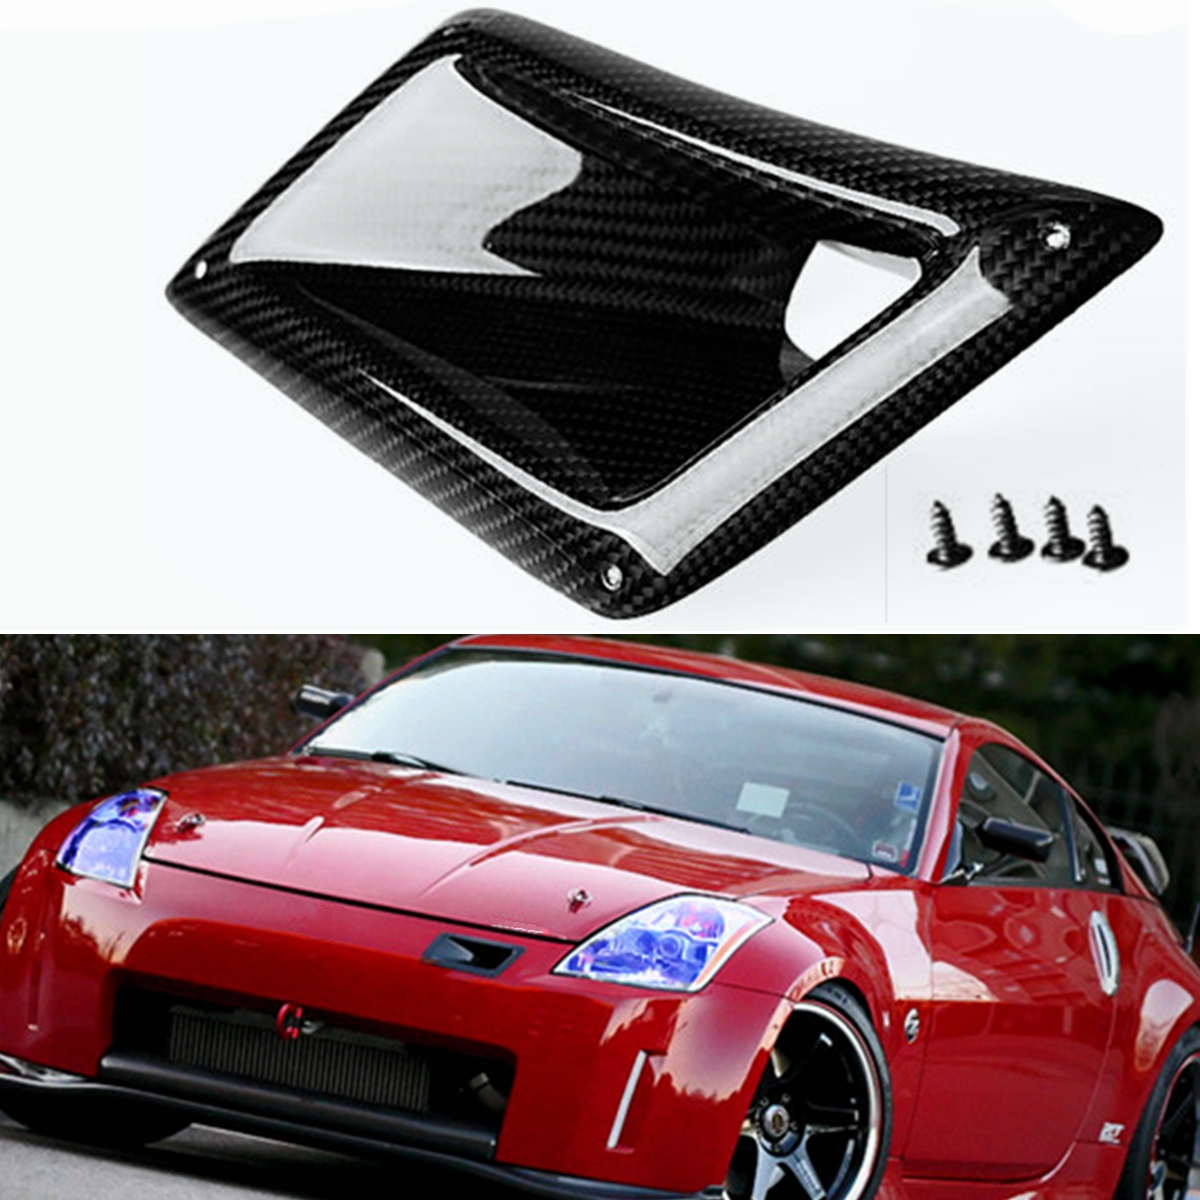 1x Left Side Rear Carbon Fiber Board Car Front Bumper Air Vent Intake Outlet Duct Cover Trim For Nissan 350Z Z33 2003-2009 image